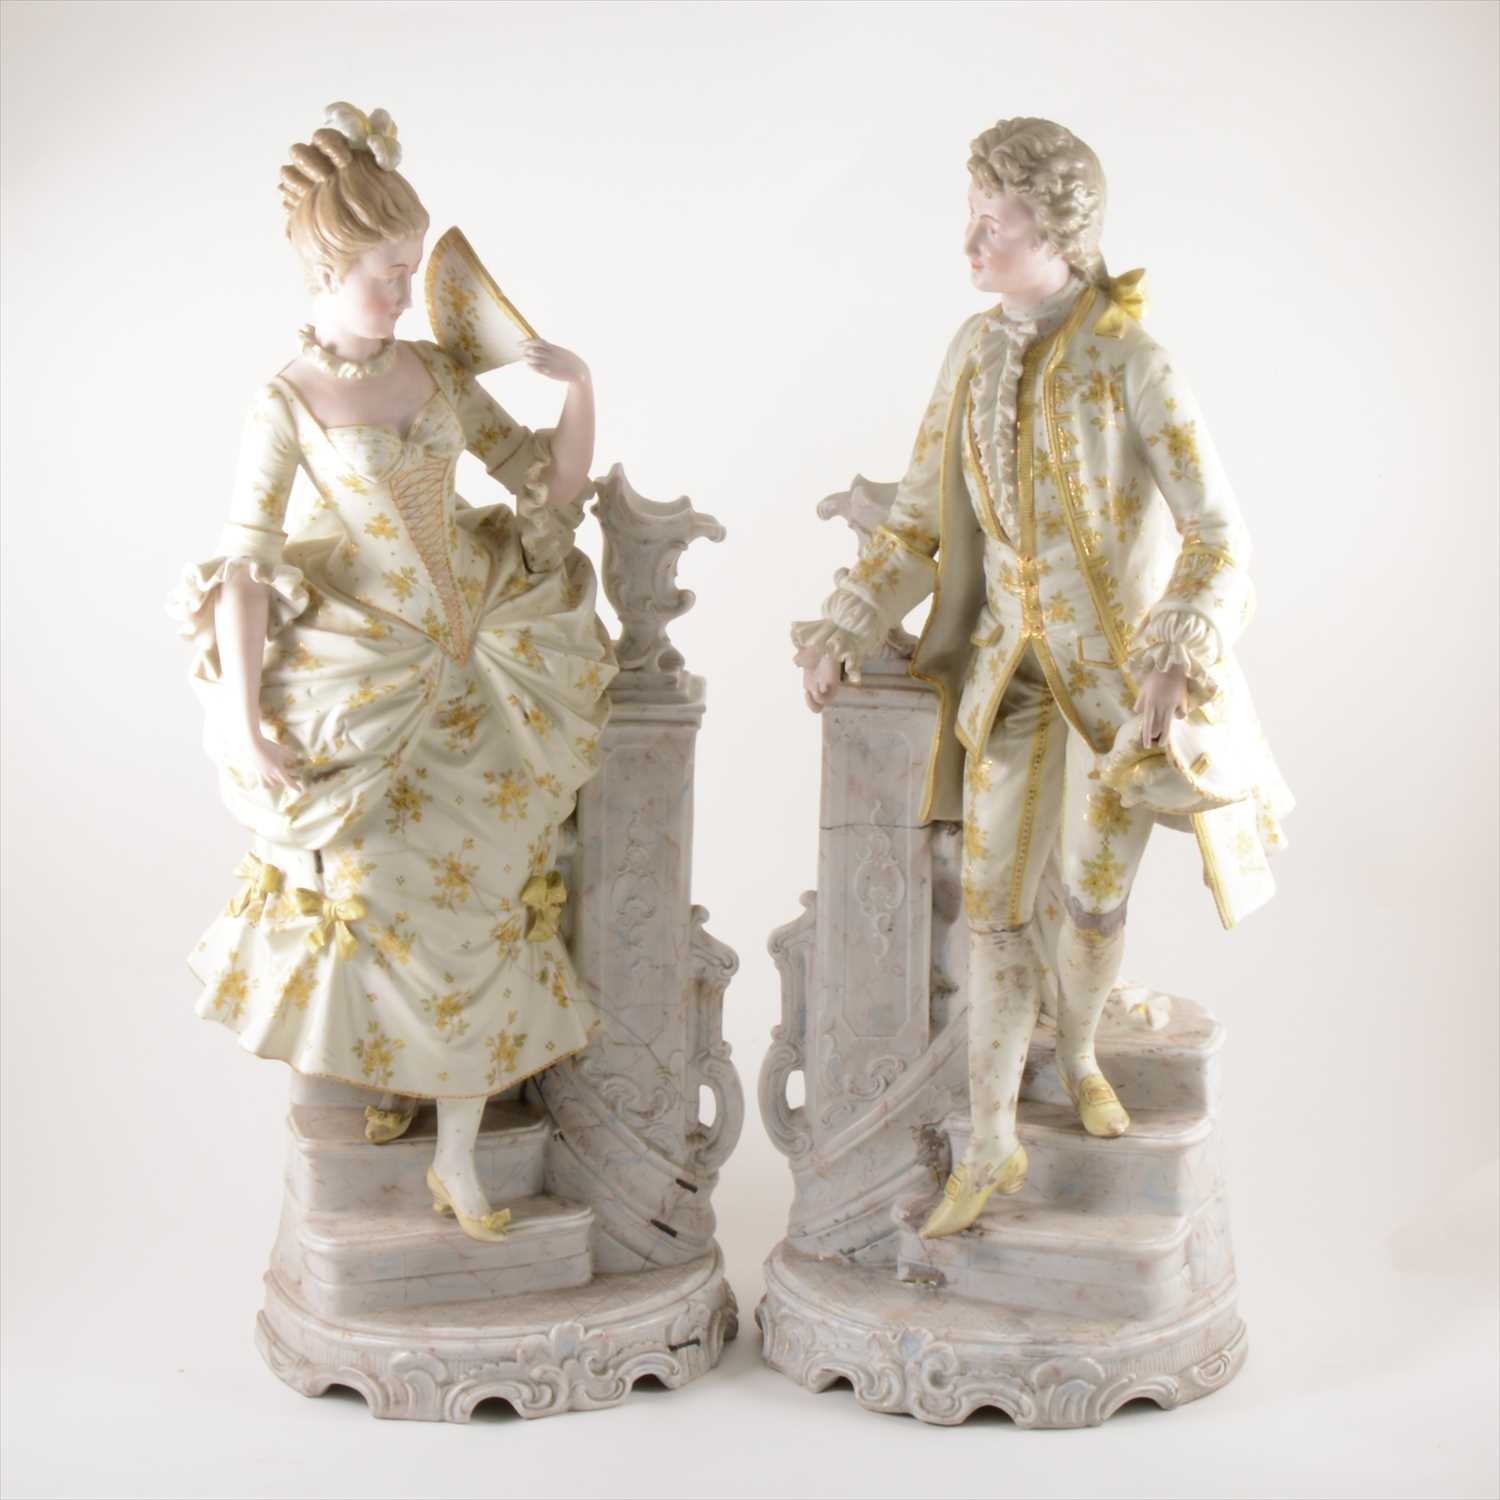 Lot 502-A pair of large French porcelain figures